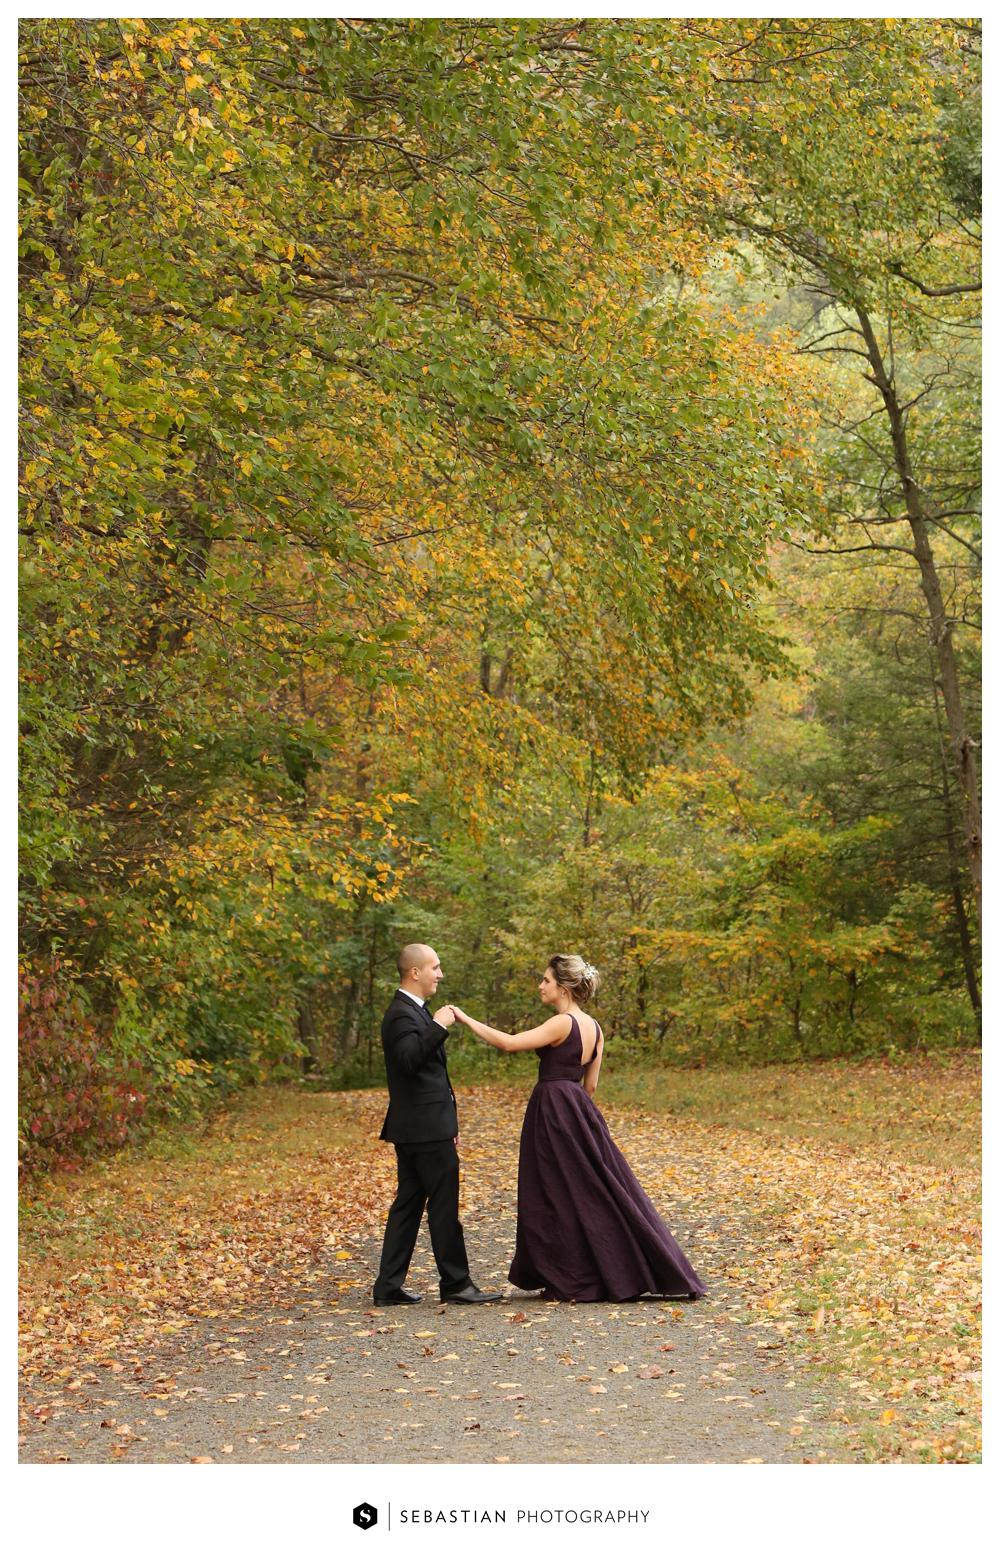 Sebastian Photography_CT Wedding Photographer_Castle Craig_CT Engagement Photographer_1003.jpg